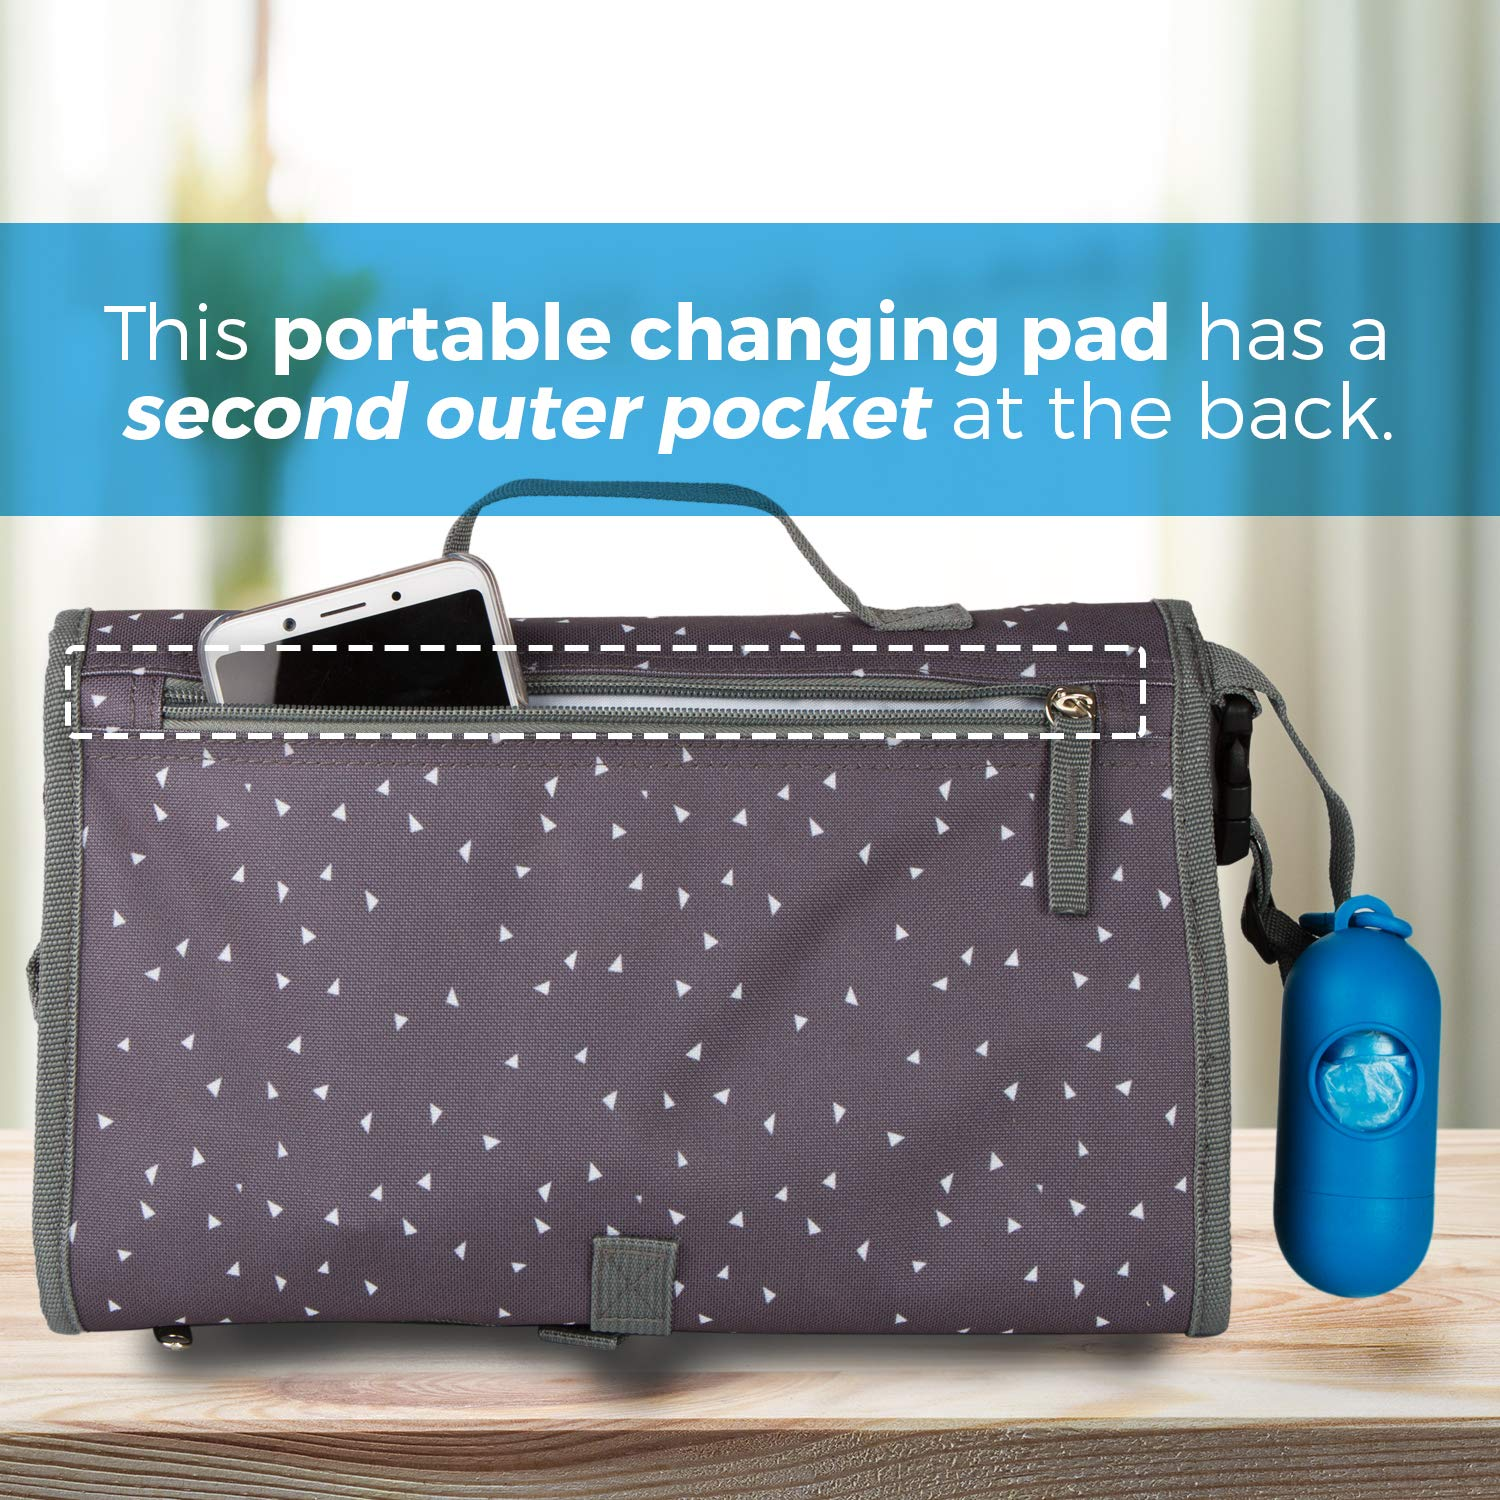 Portable Diaper Changing Pad Clutch Baby Changing Station with Disposable Dirty Diaper Bags and Dispenser Extra Head Cushion Great for Travel Lightweight Pockets for Diapers Wipes Cream Easy to Clean by Koukla (Image #5)